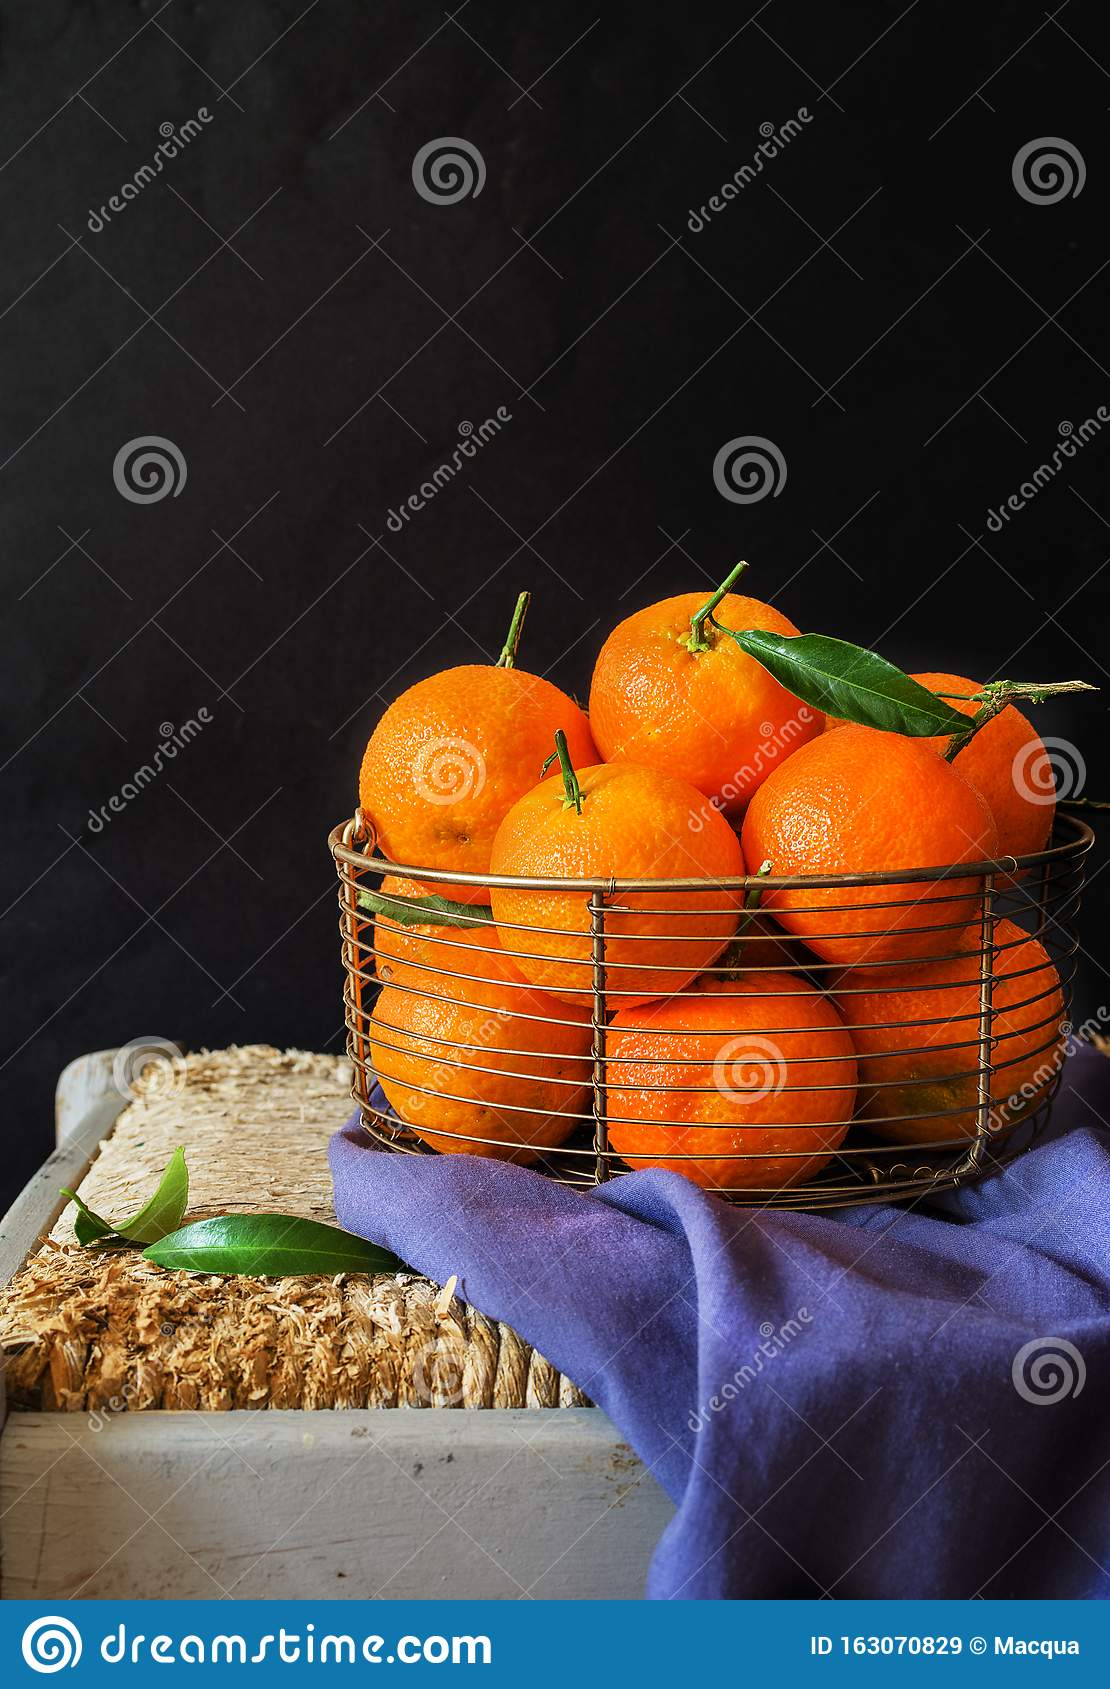 Fresh clementines, in a metellic basket on black background